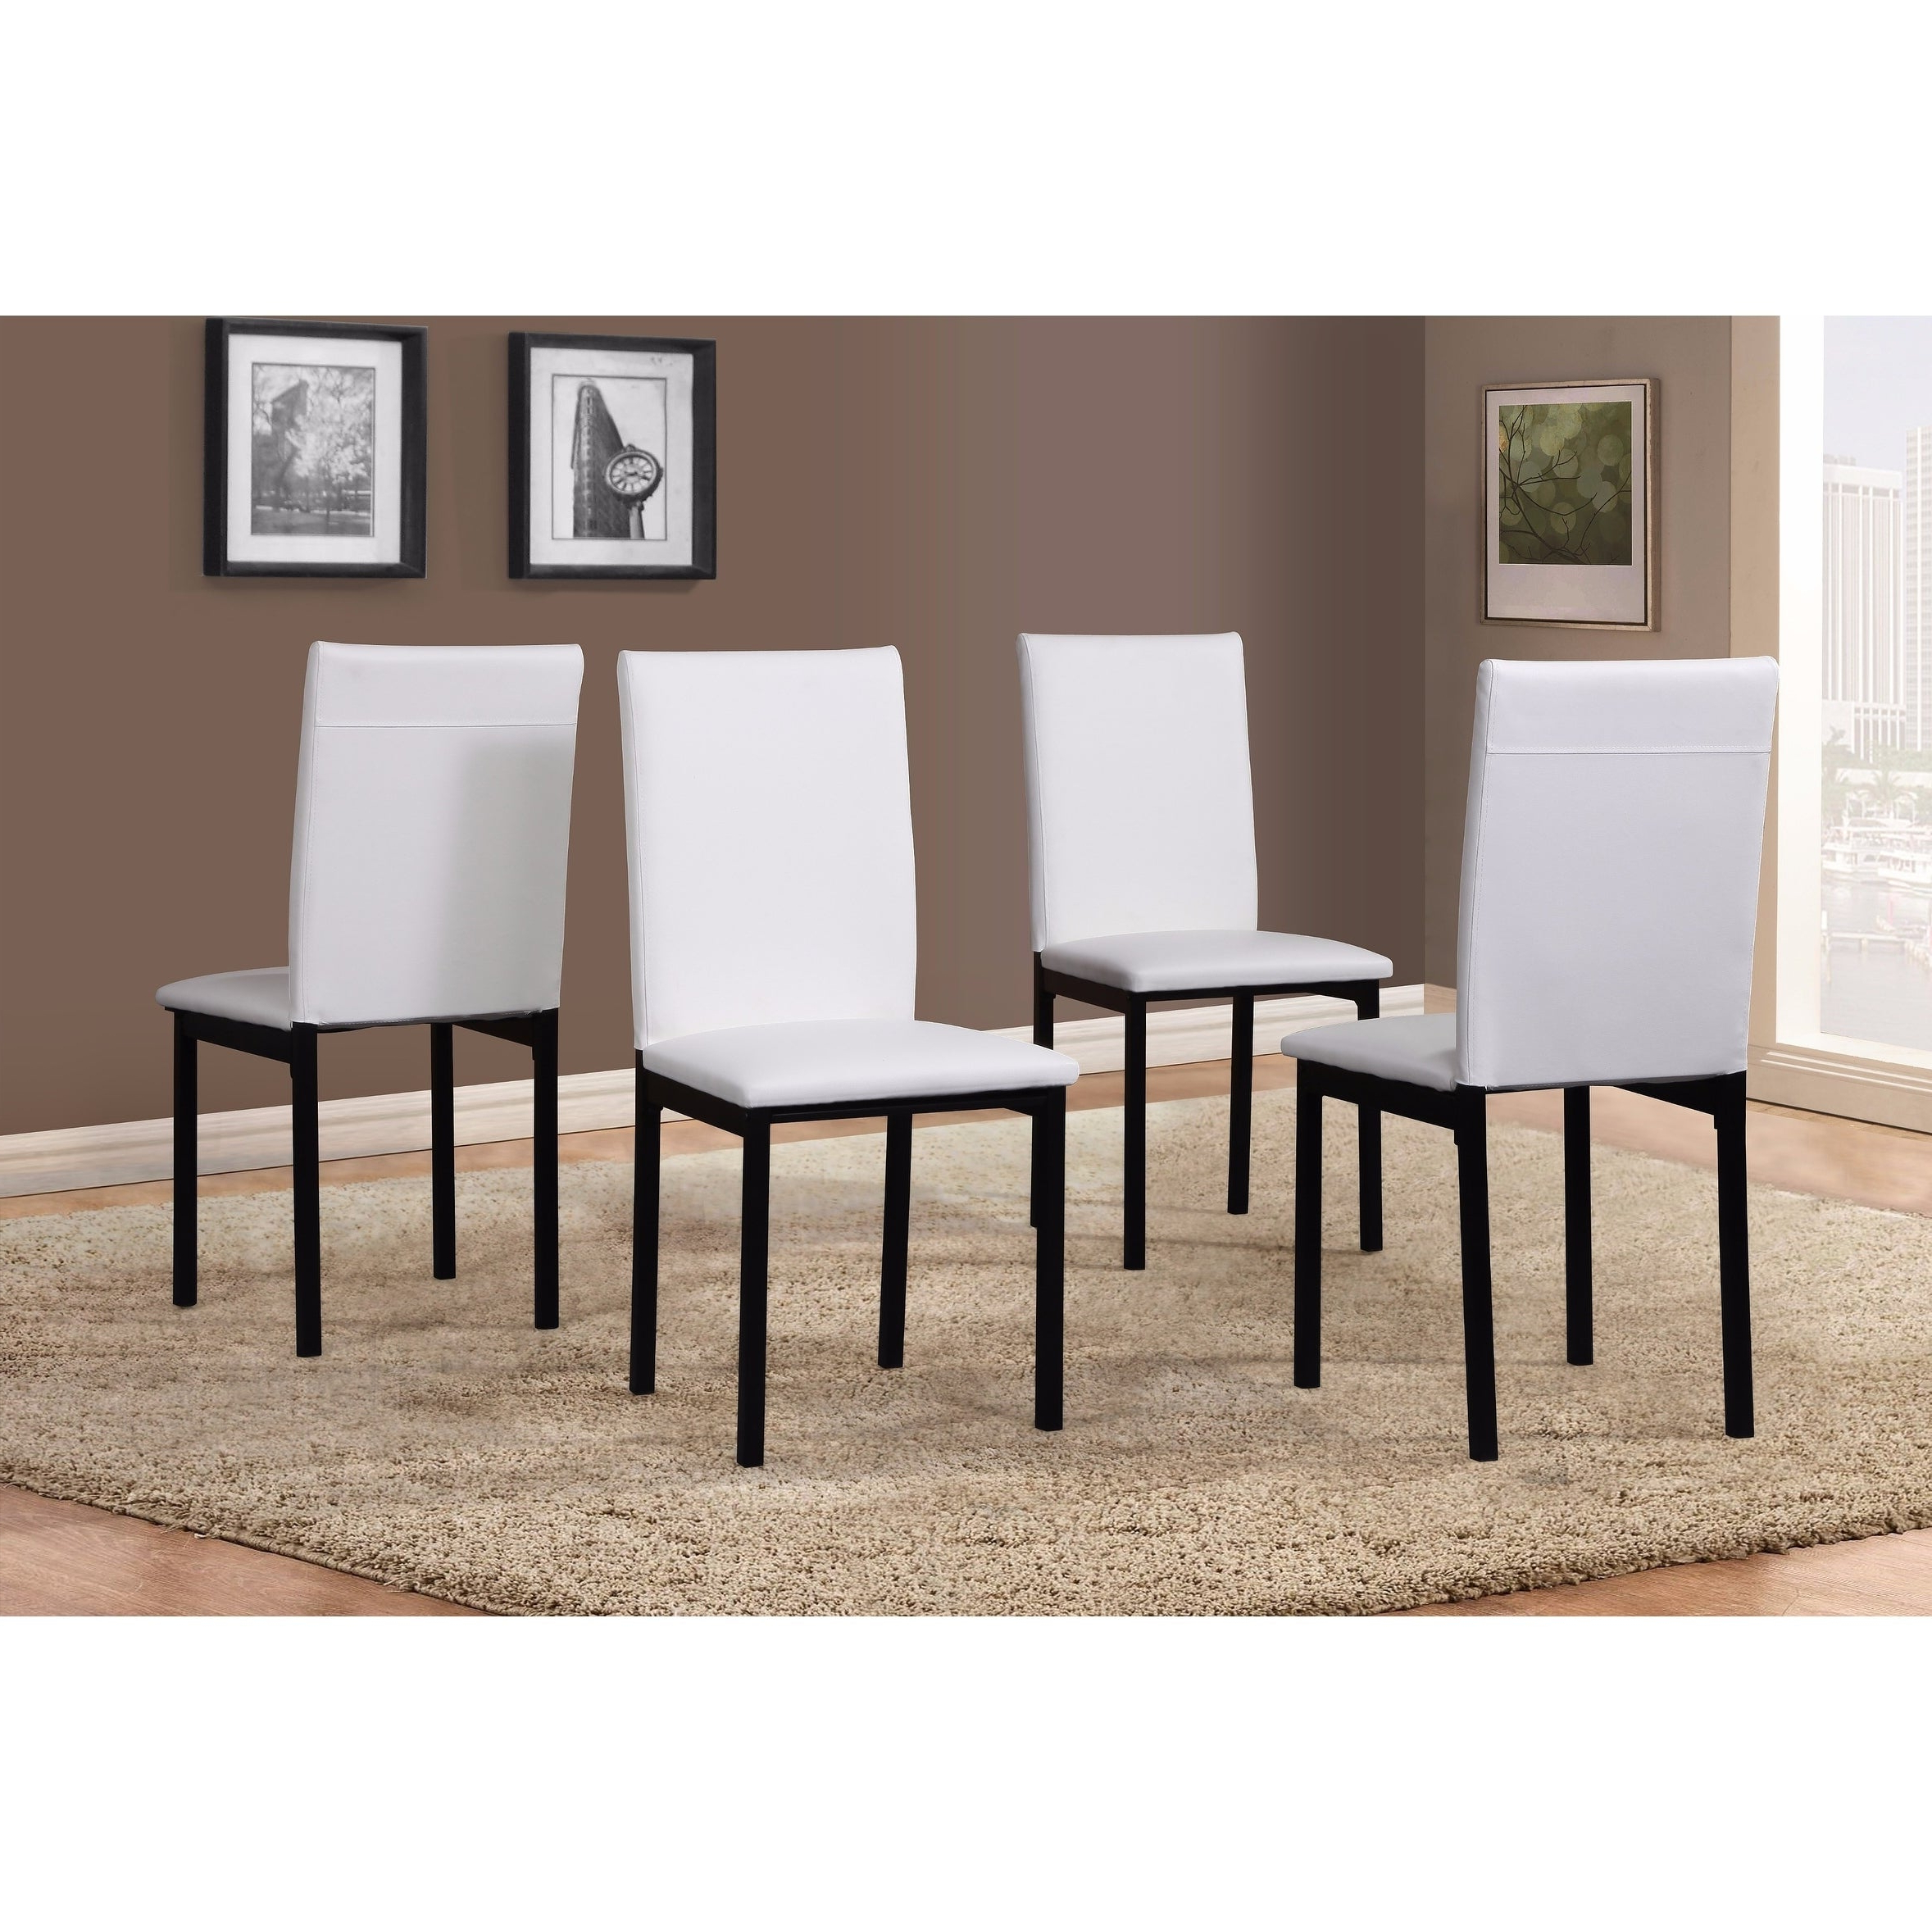 Noyes 5 Piece Dining Sets Intended For 2018 Noyes Faux Leather Seat Metal Frame Black Dining Chairs, Set Of (View 12 of 20)